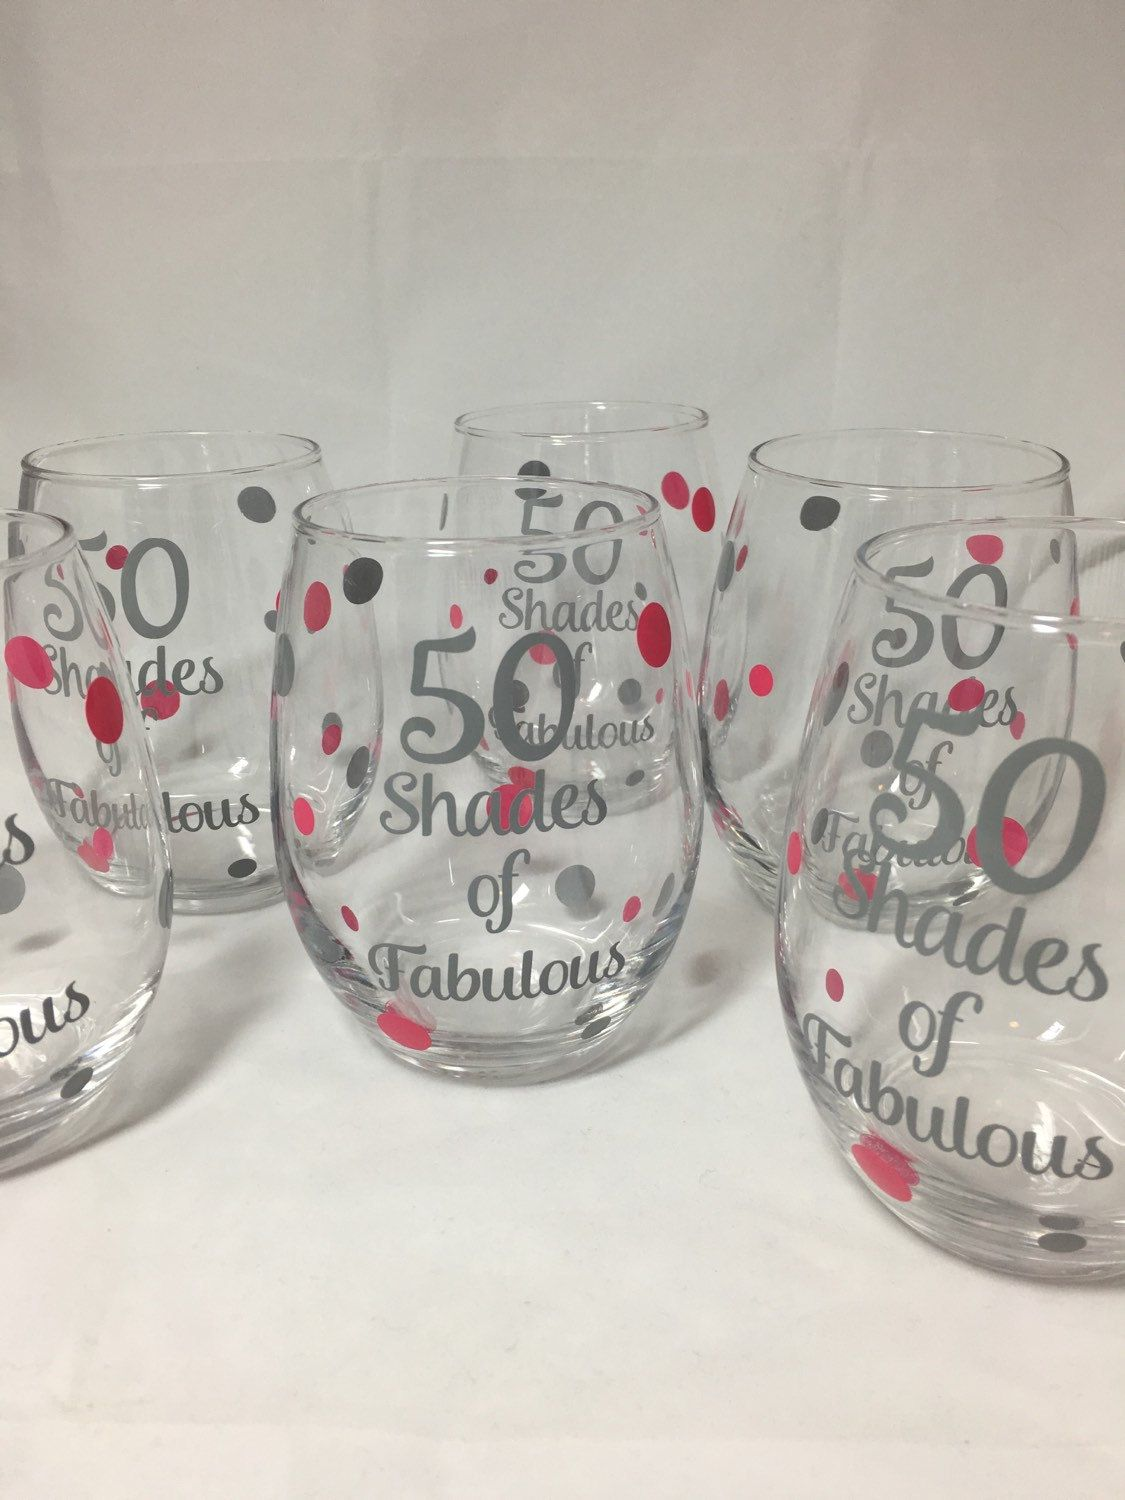 This listing is for ONE 21oz stemless wine glass. Check